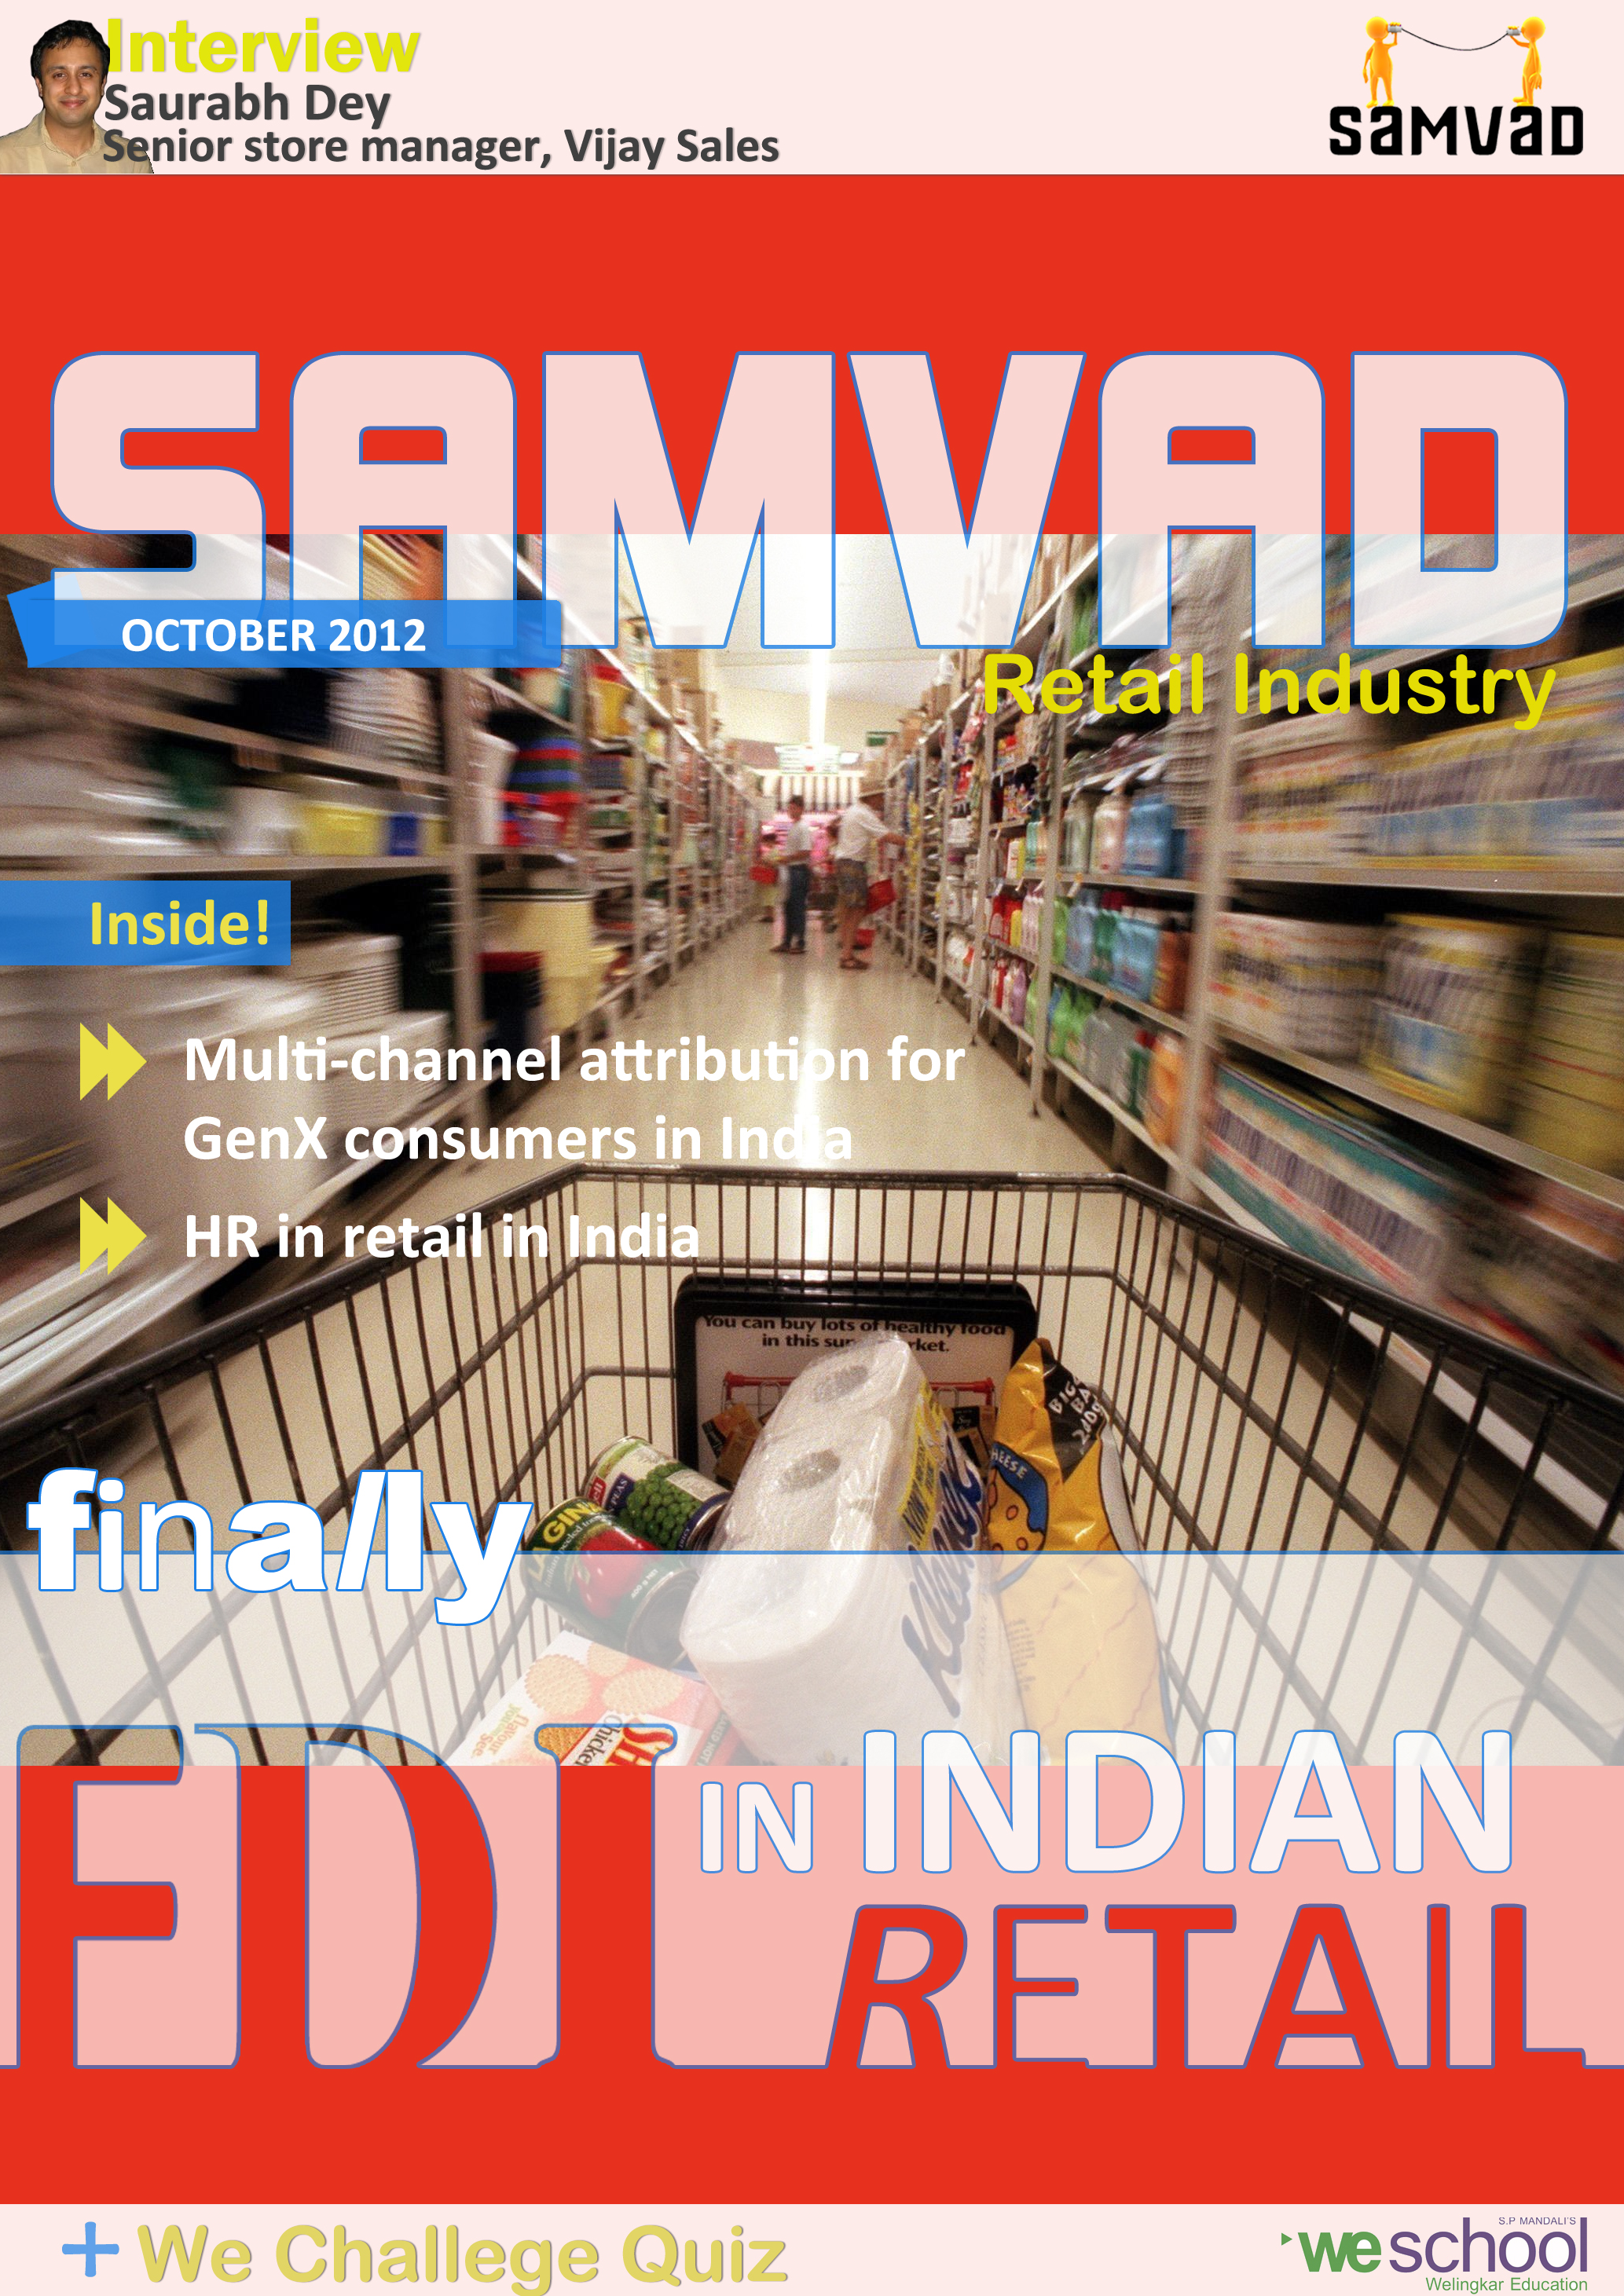 Samvad brings you the 'The Big Tale Of Retail Industry'